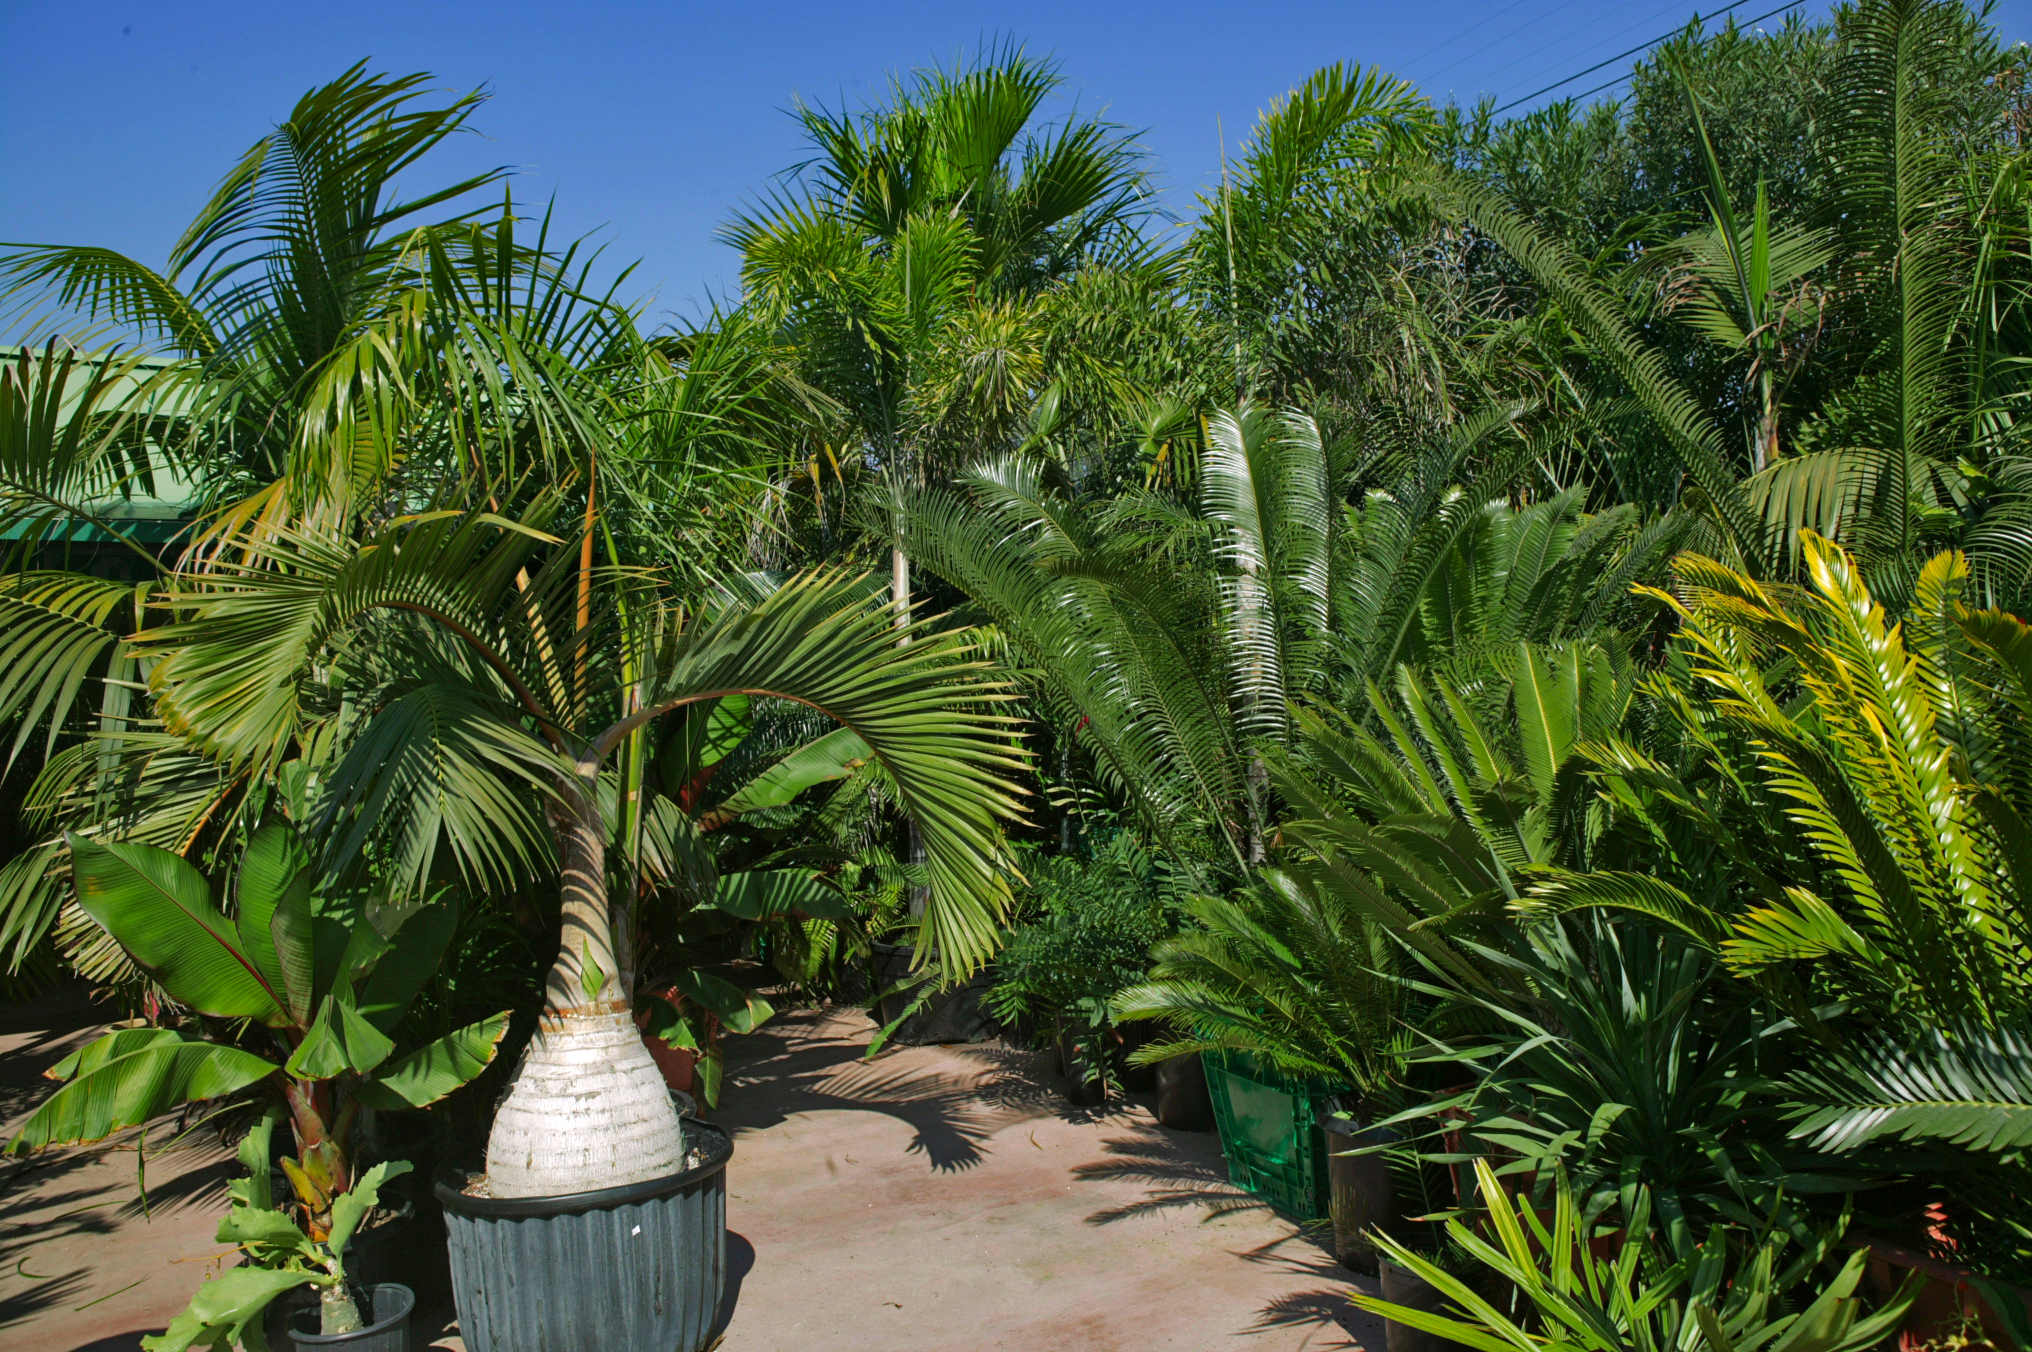 Tour of Jungle Music Palms, Cycads & Tropical Plants